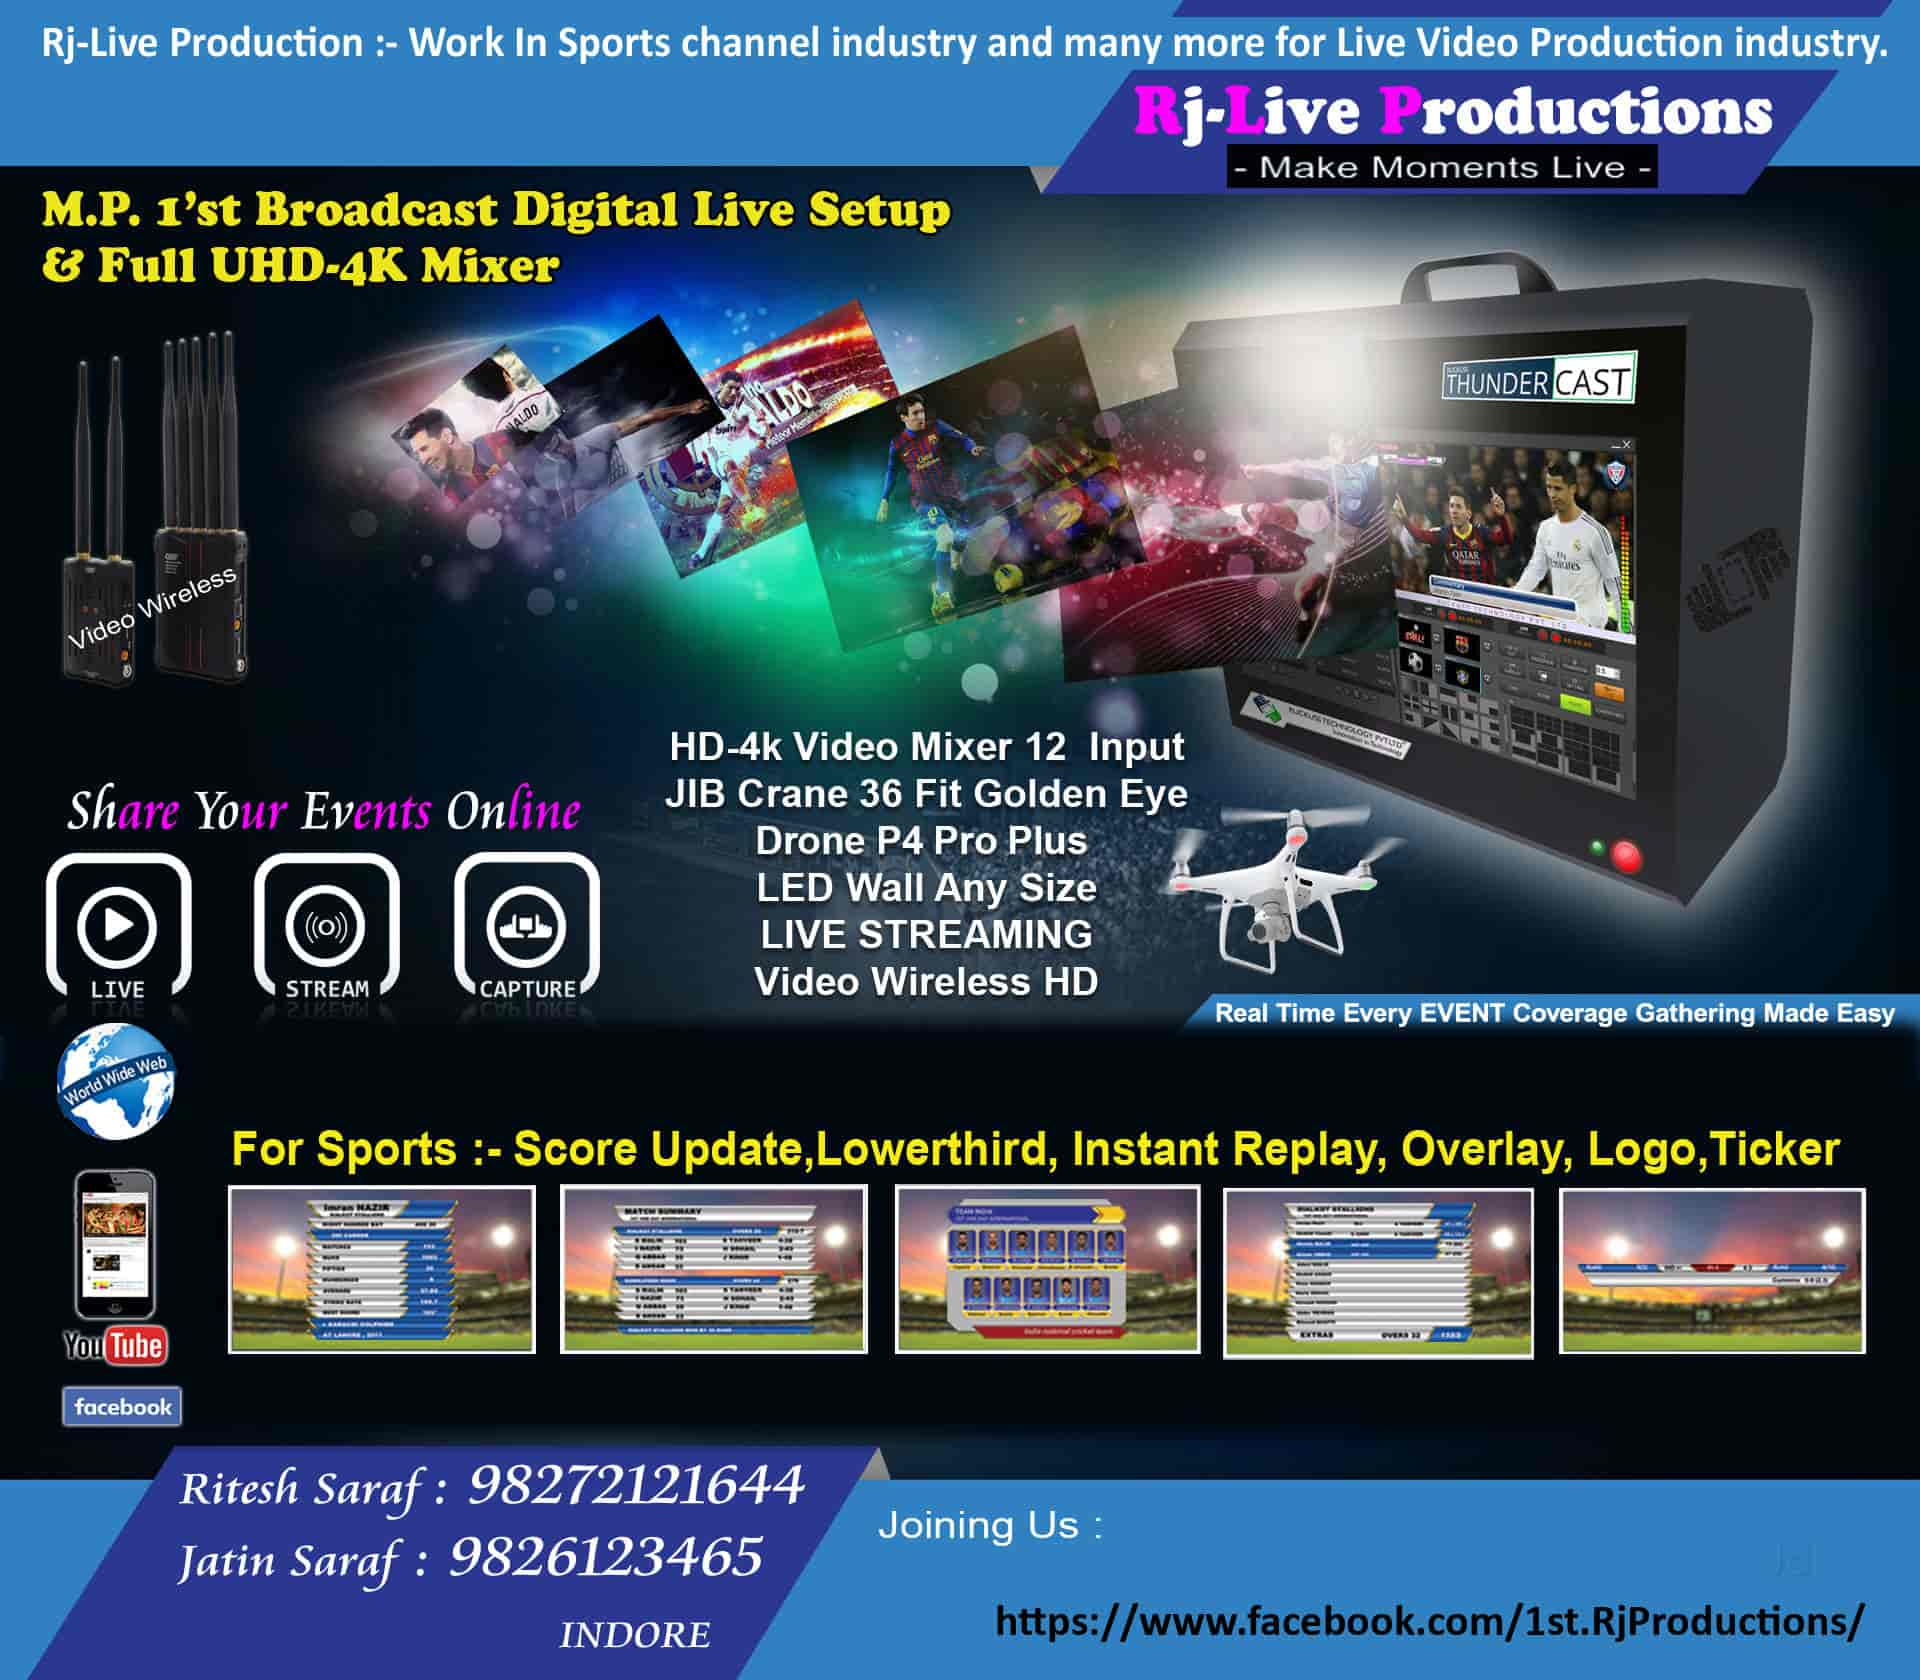 RJ Systems - Payal Video Photos, Jail Road, Indore- Pictures